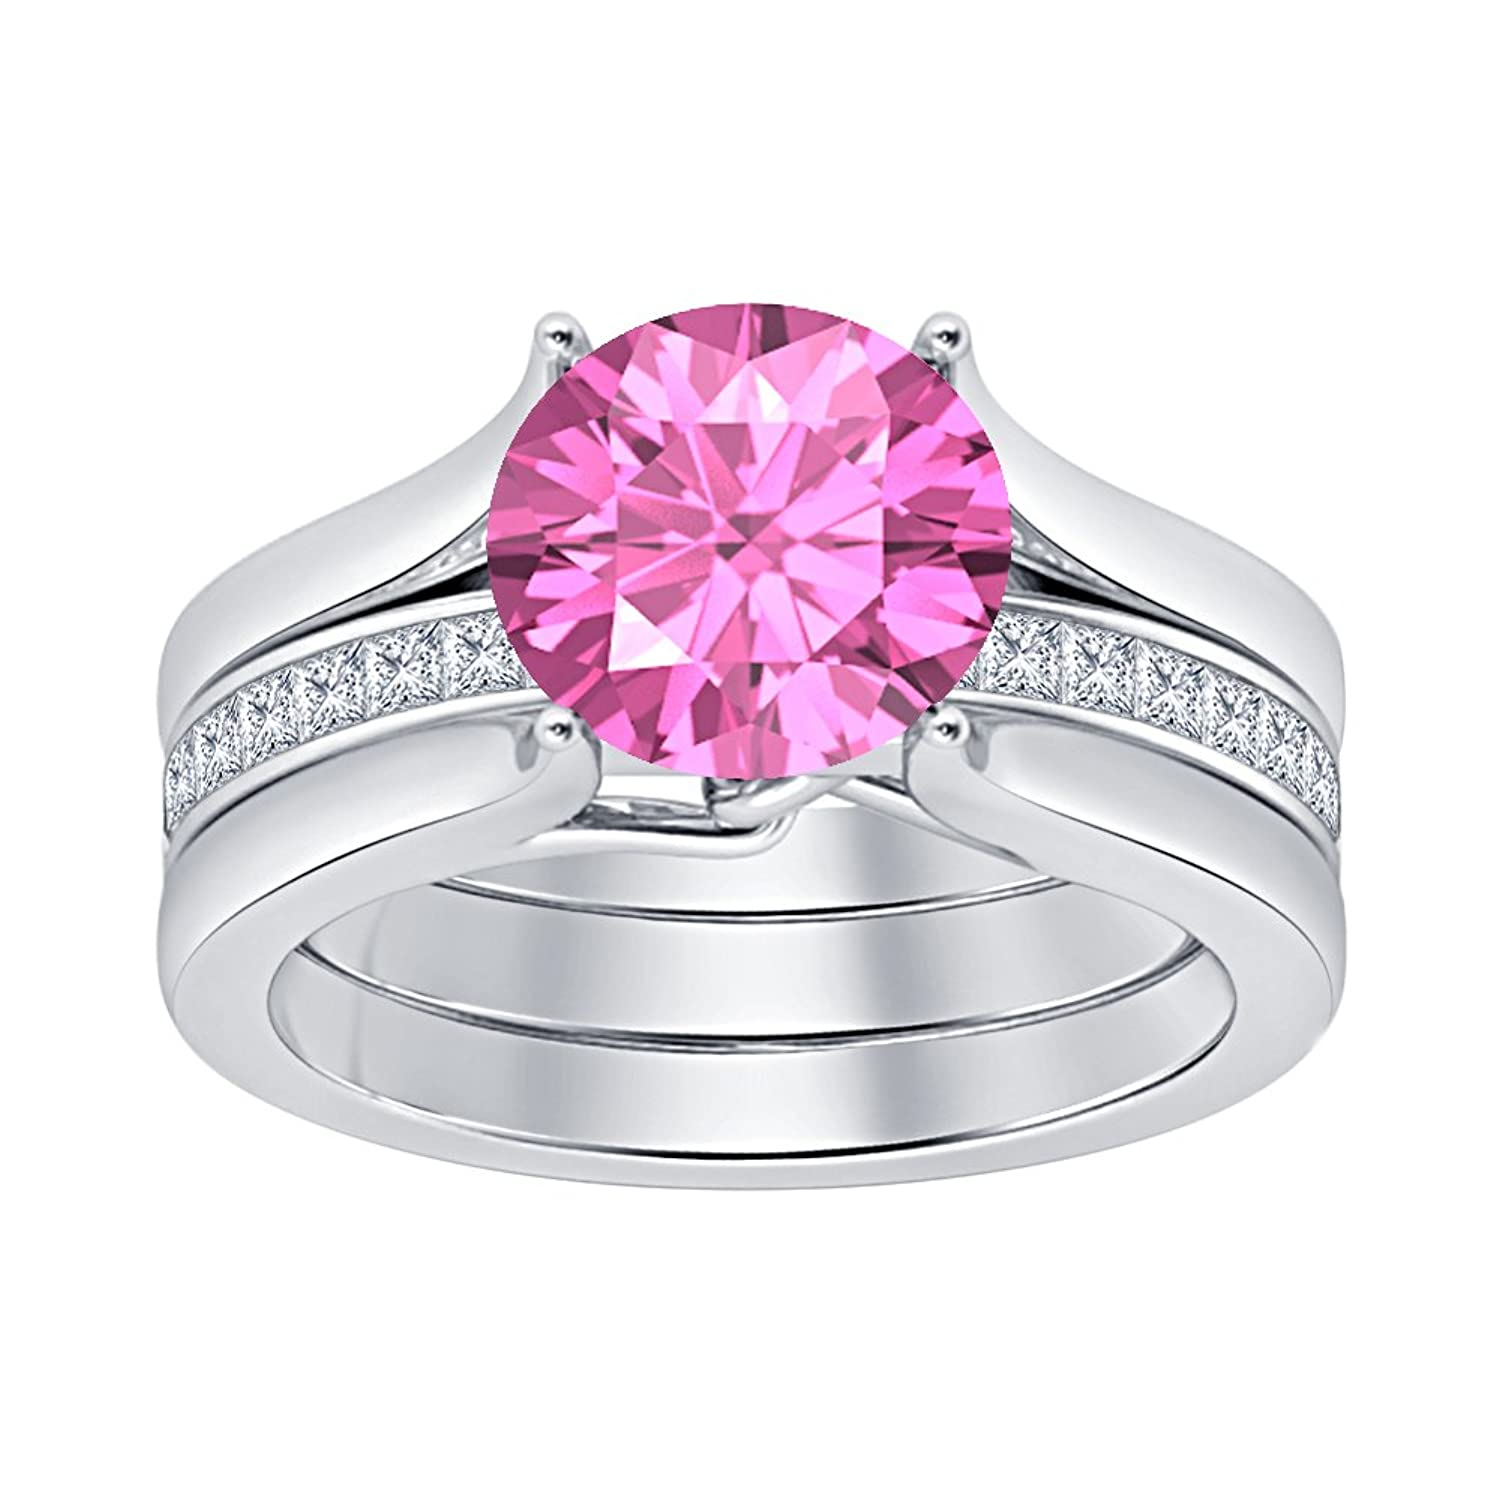 Amazon.com: 2.50 ctw Round Cut Pink Sapphire & White CZ Diamond 925 ...